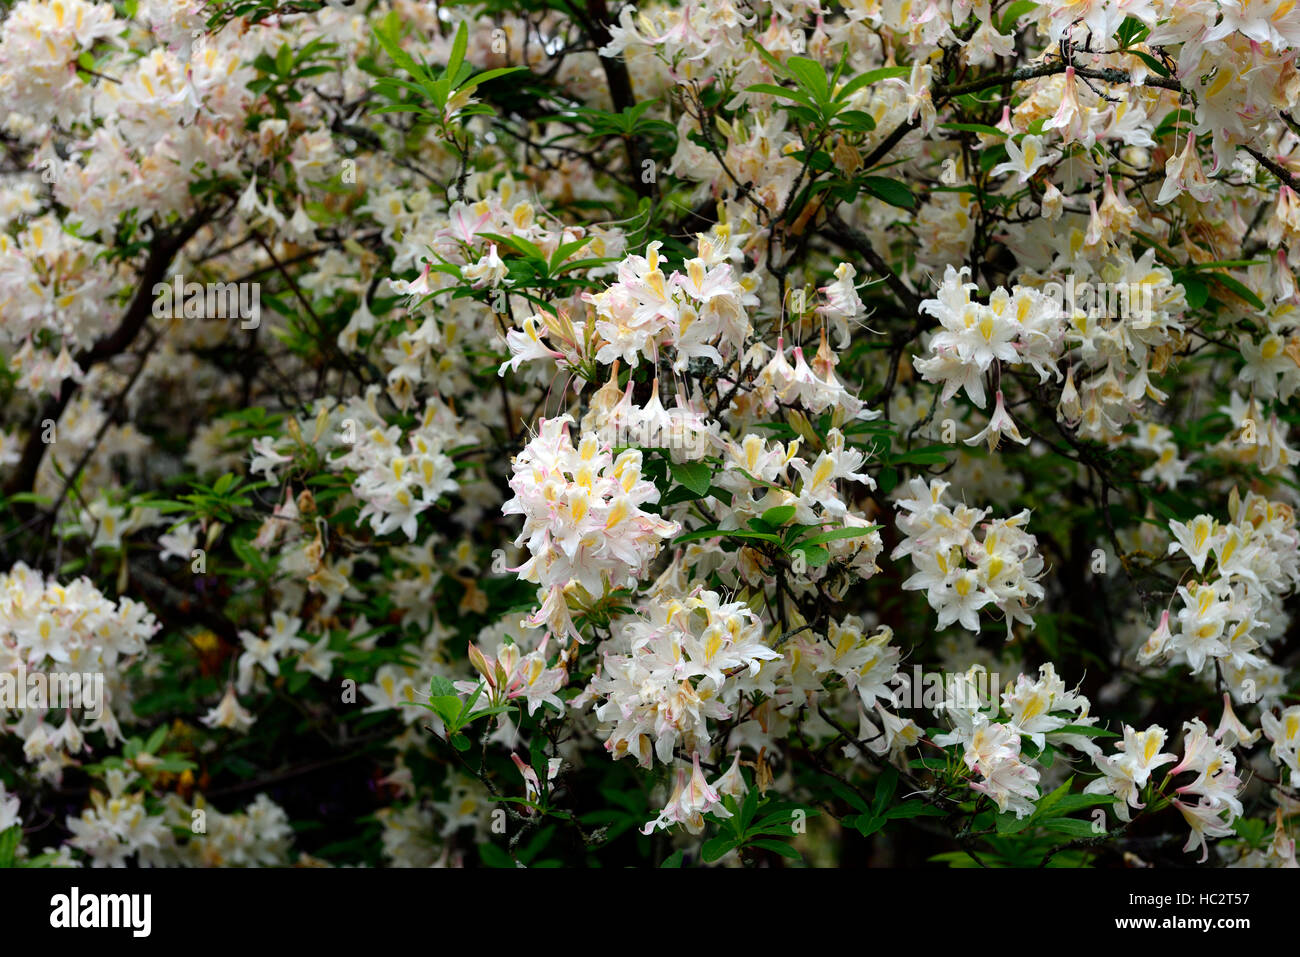 rhododendron luteum hybrid white flower flowers flowering ericaceous shrub spring bloom blooming RM Floral Stock Photo